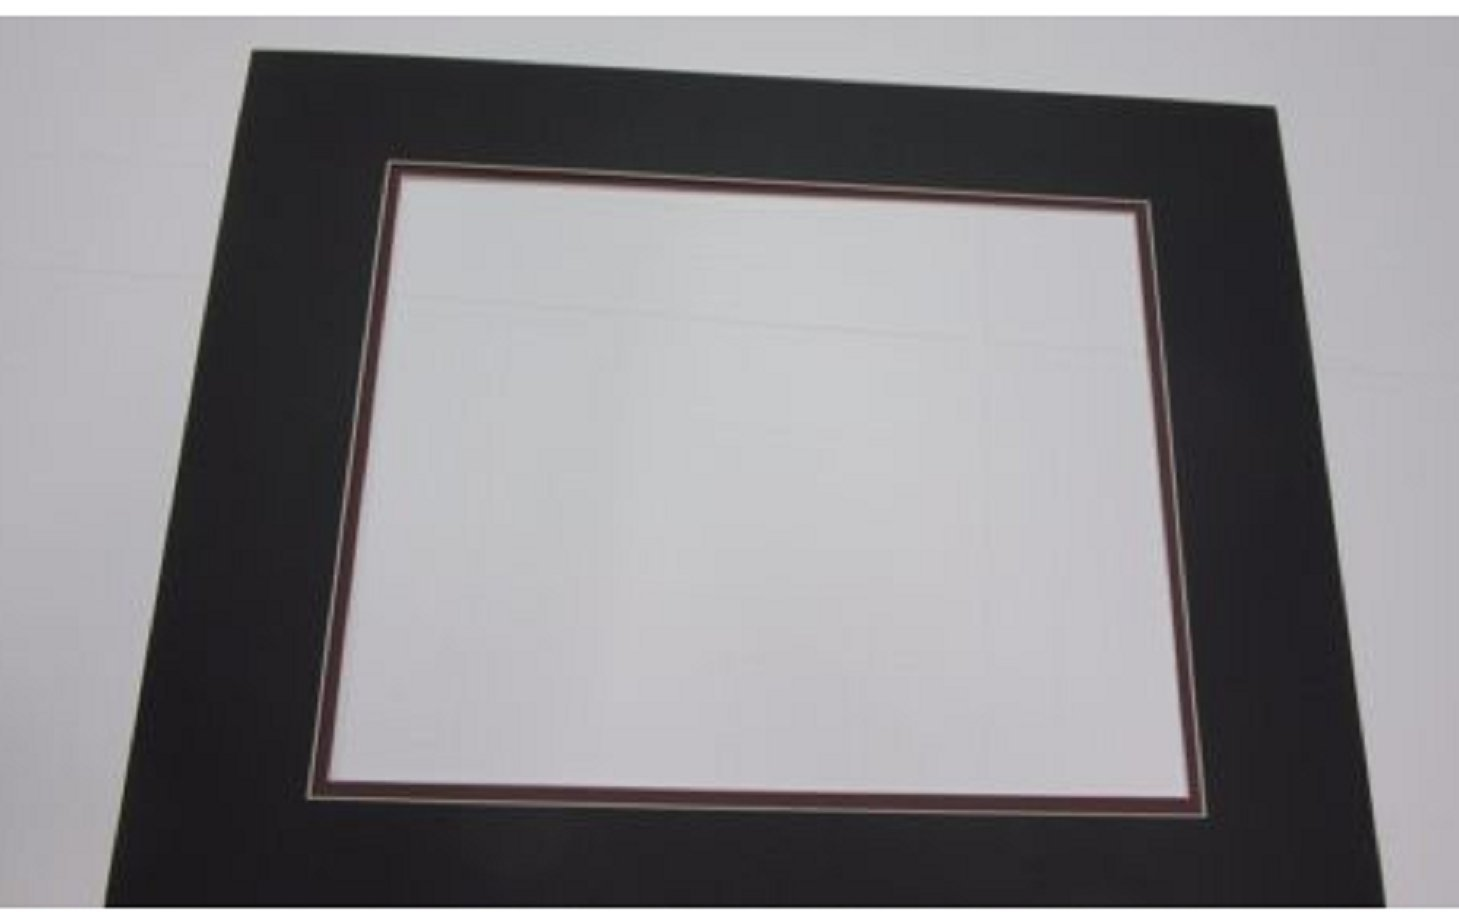 USA Premium Store Picture Framing Mats 16x20 for 11x14 photo set of 3 Black with Garnet liners